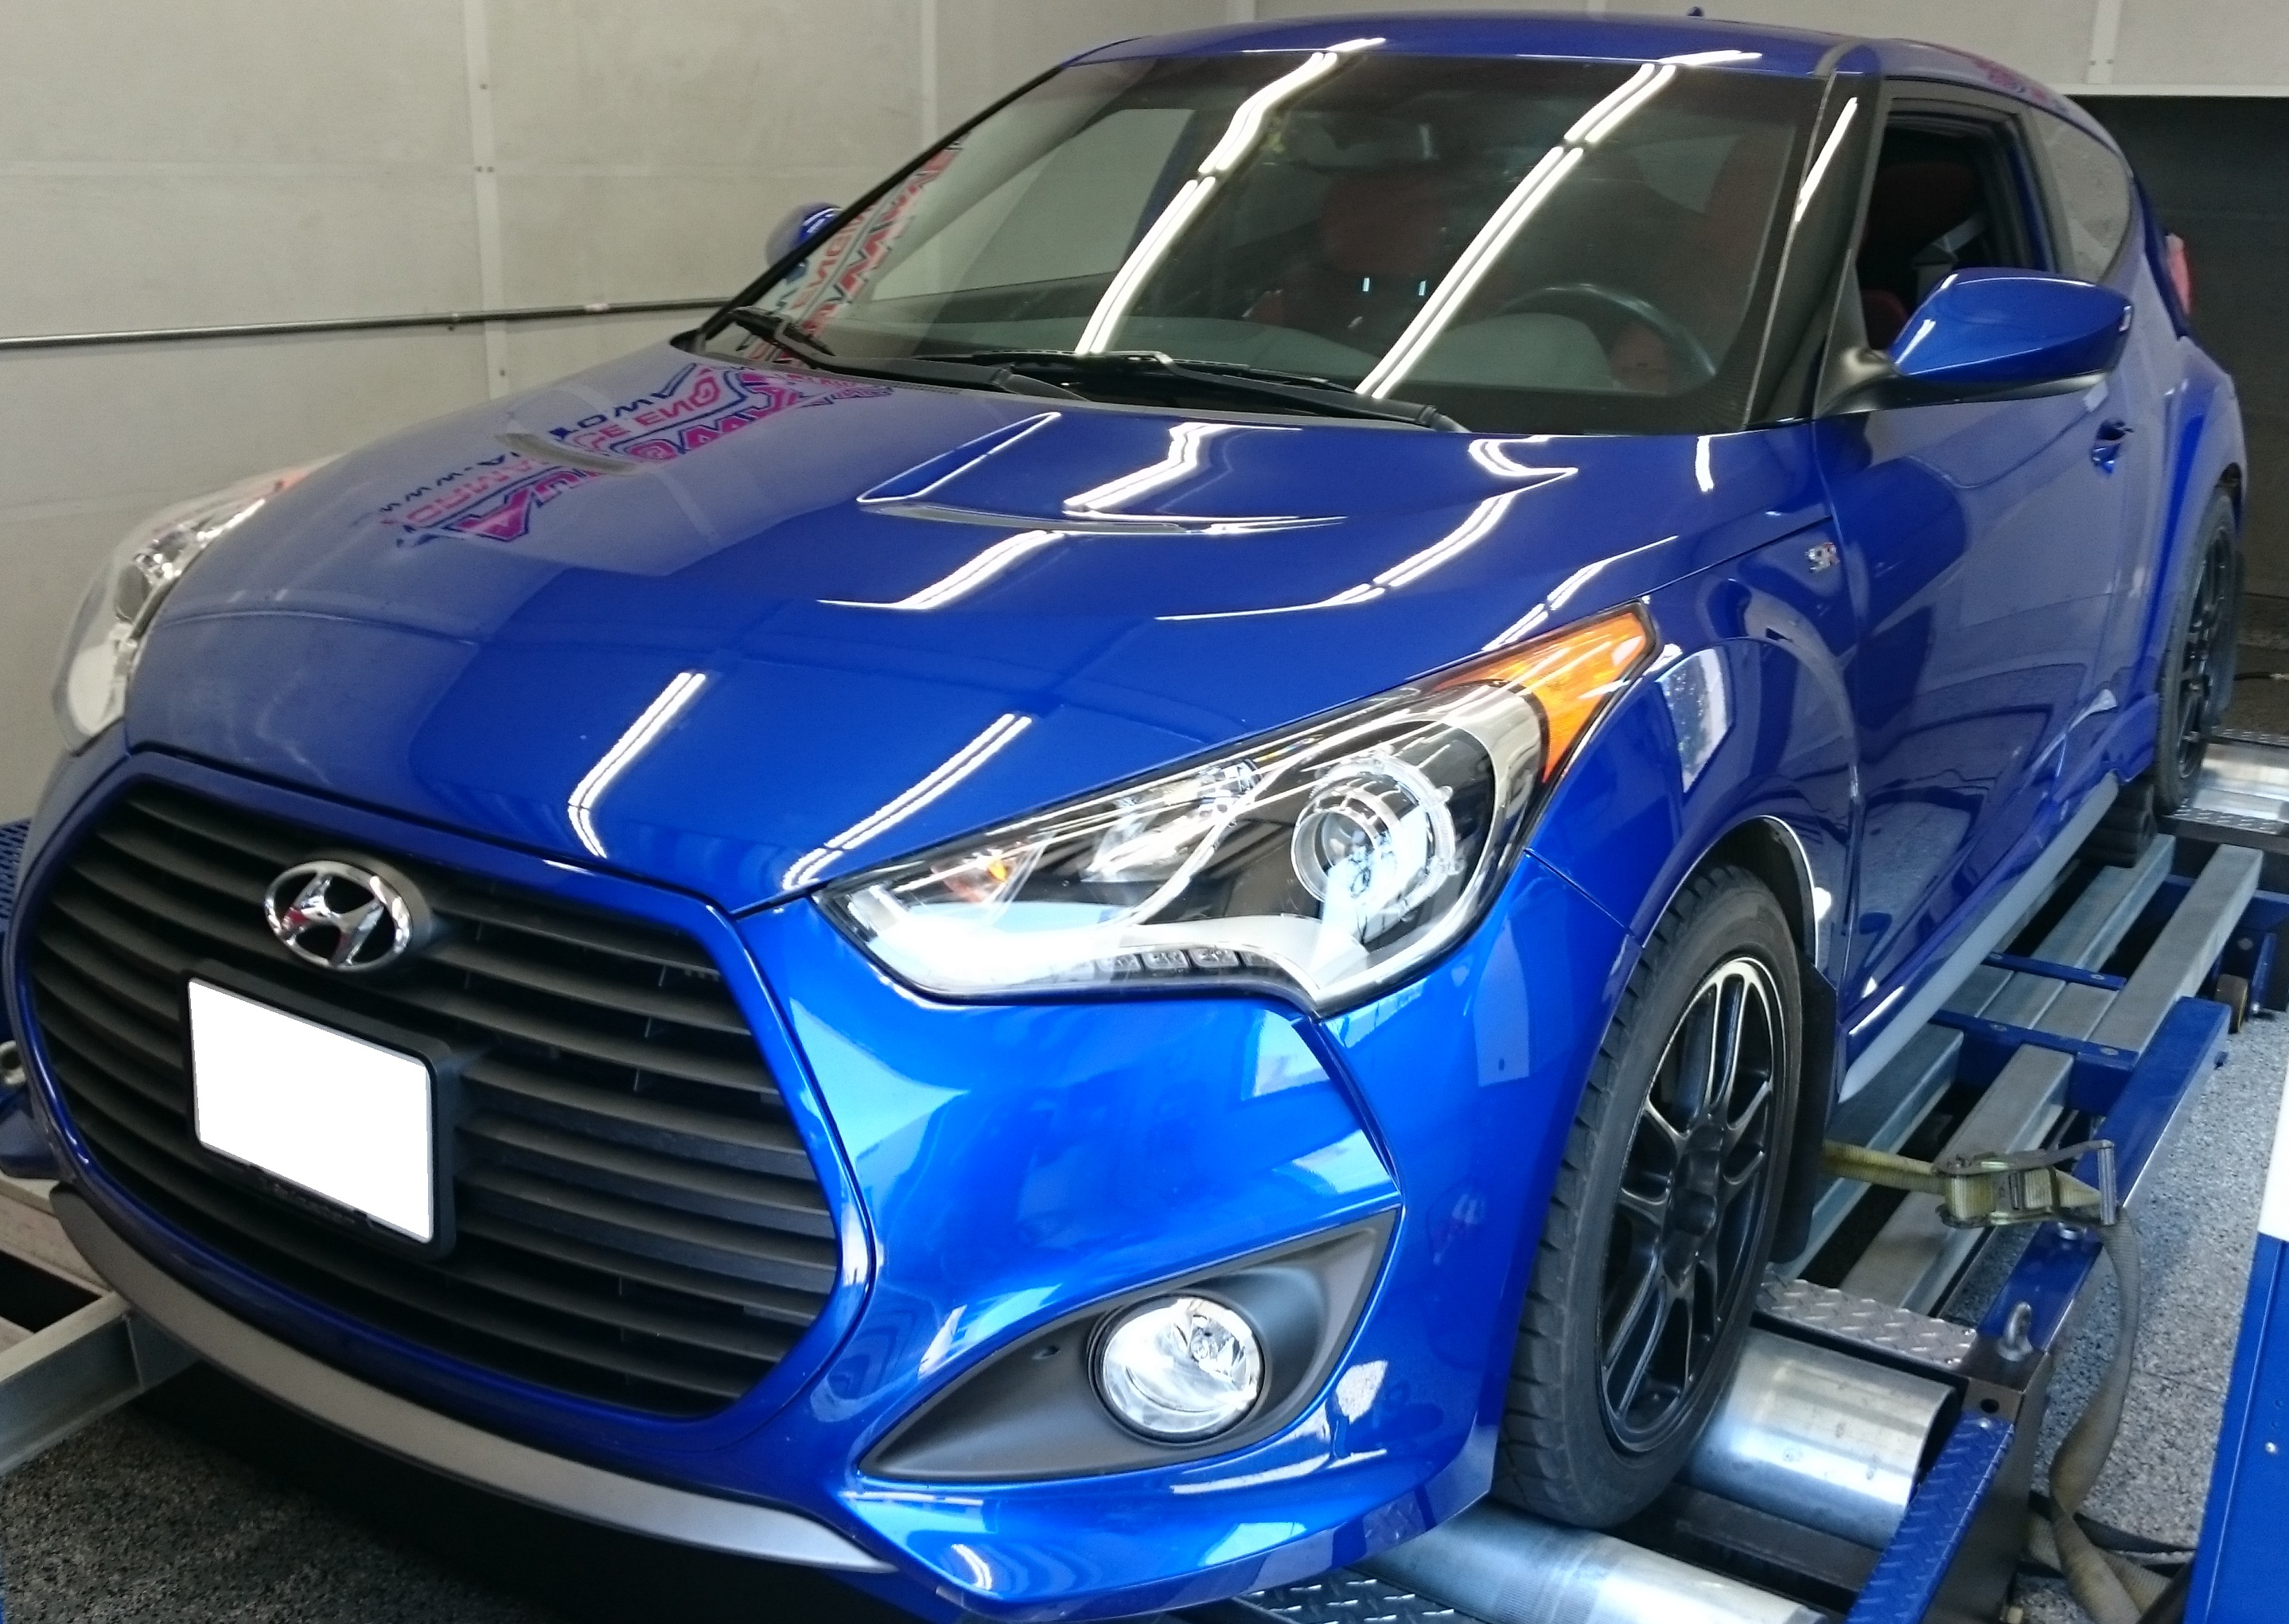 Hyundai Veloster Turbo  ECU Tune Results  OE Tuning Blog